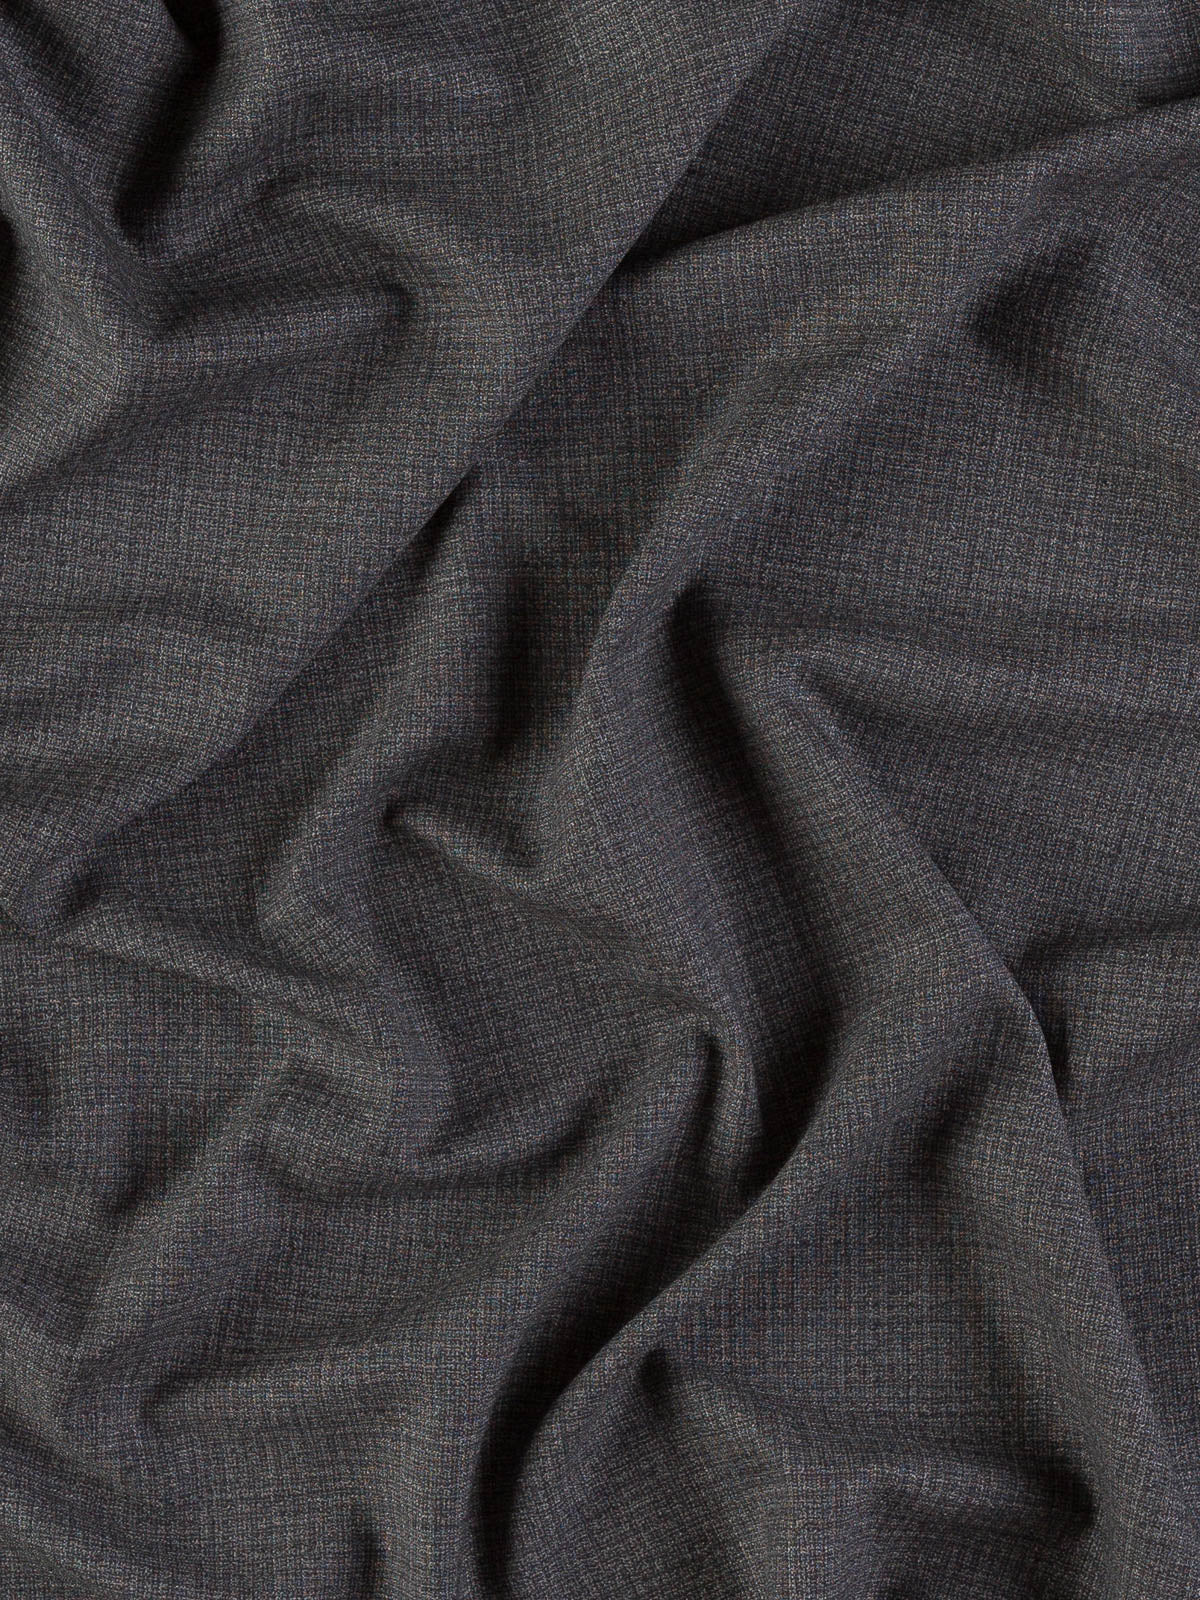 1m BLACK RIB Cotton Rayon Blend Med-Weight Suiting Fabric